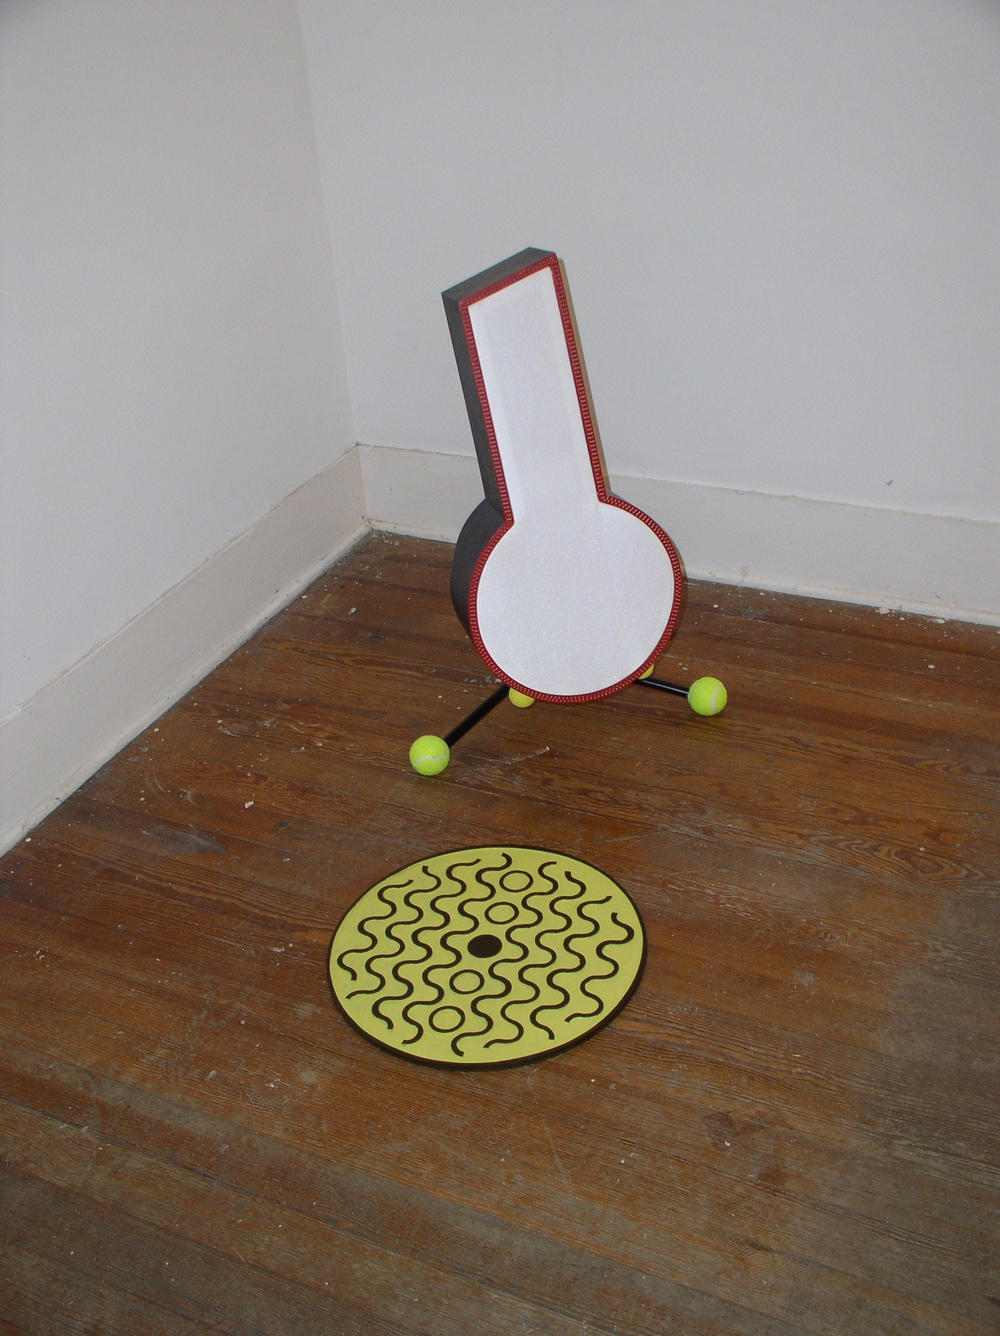 Banjo and Manhole, 2003